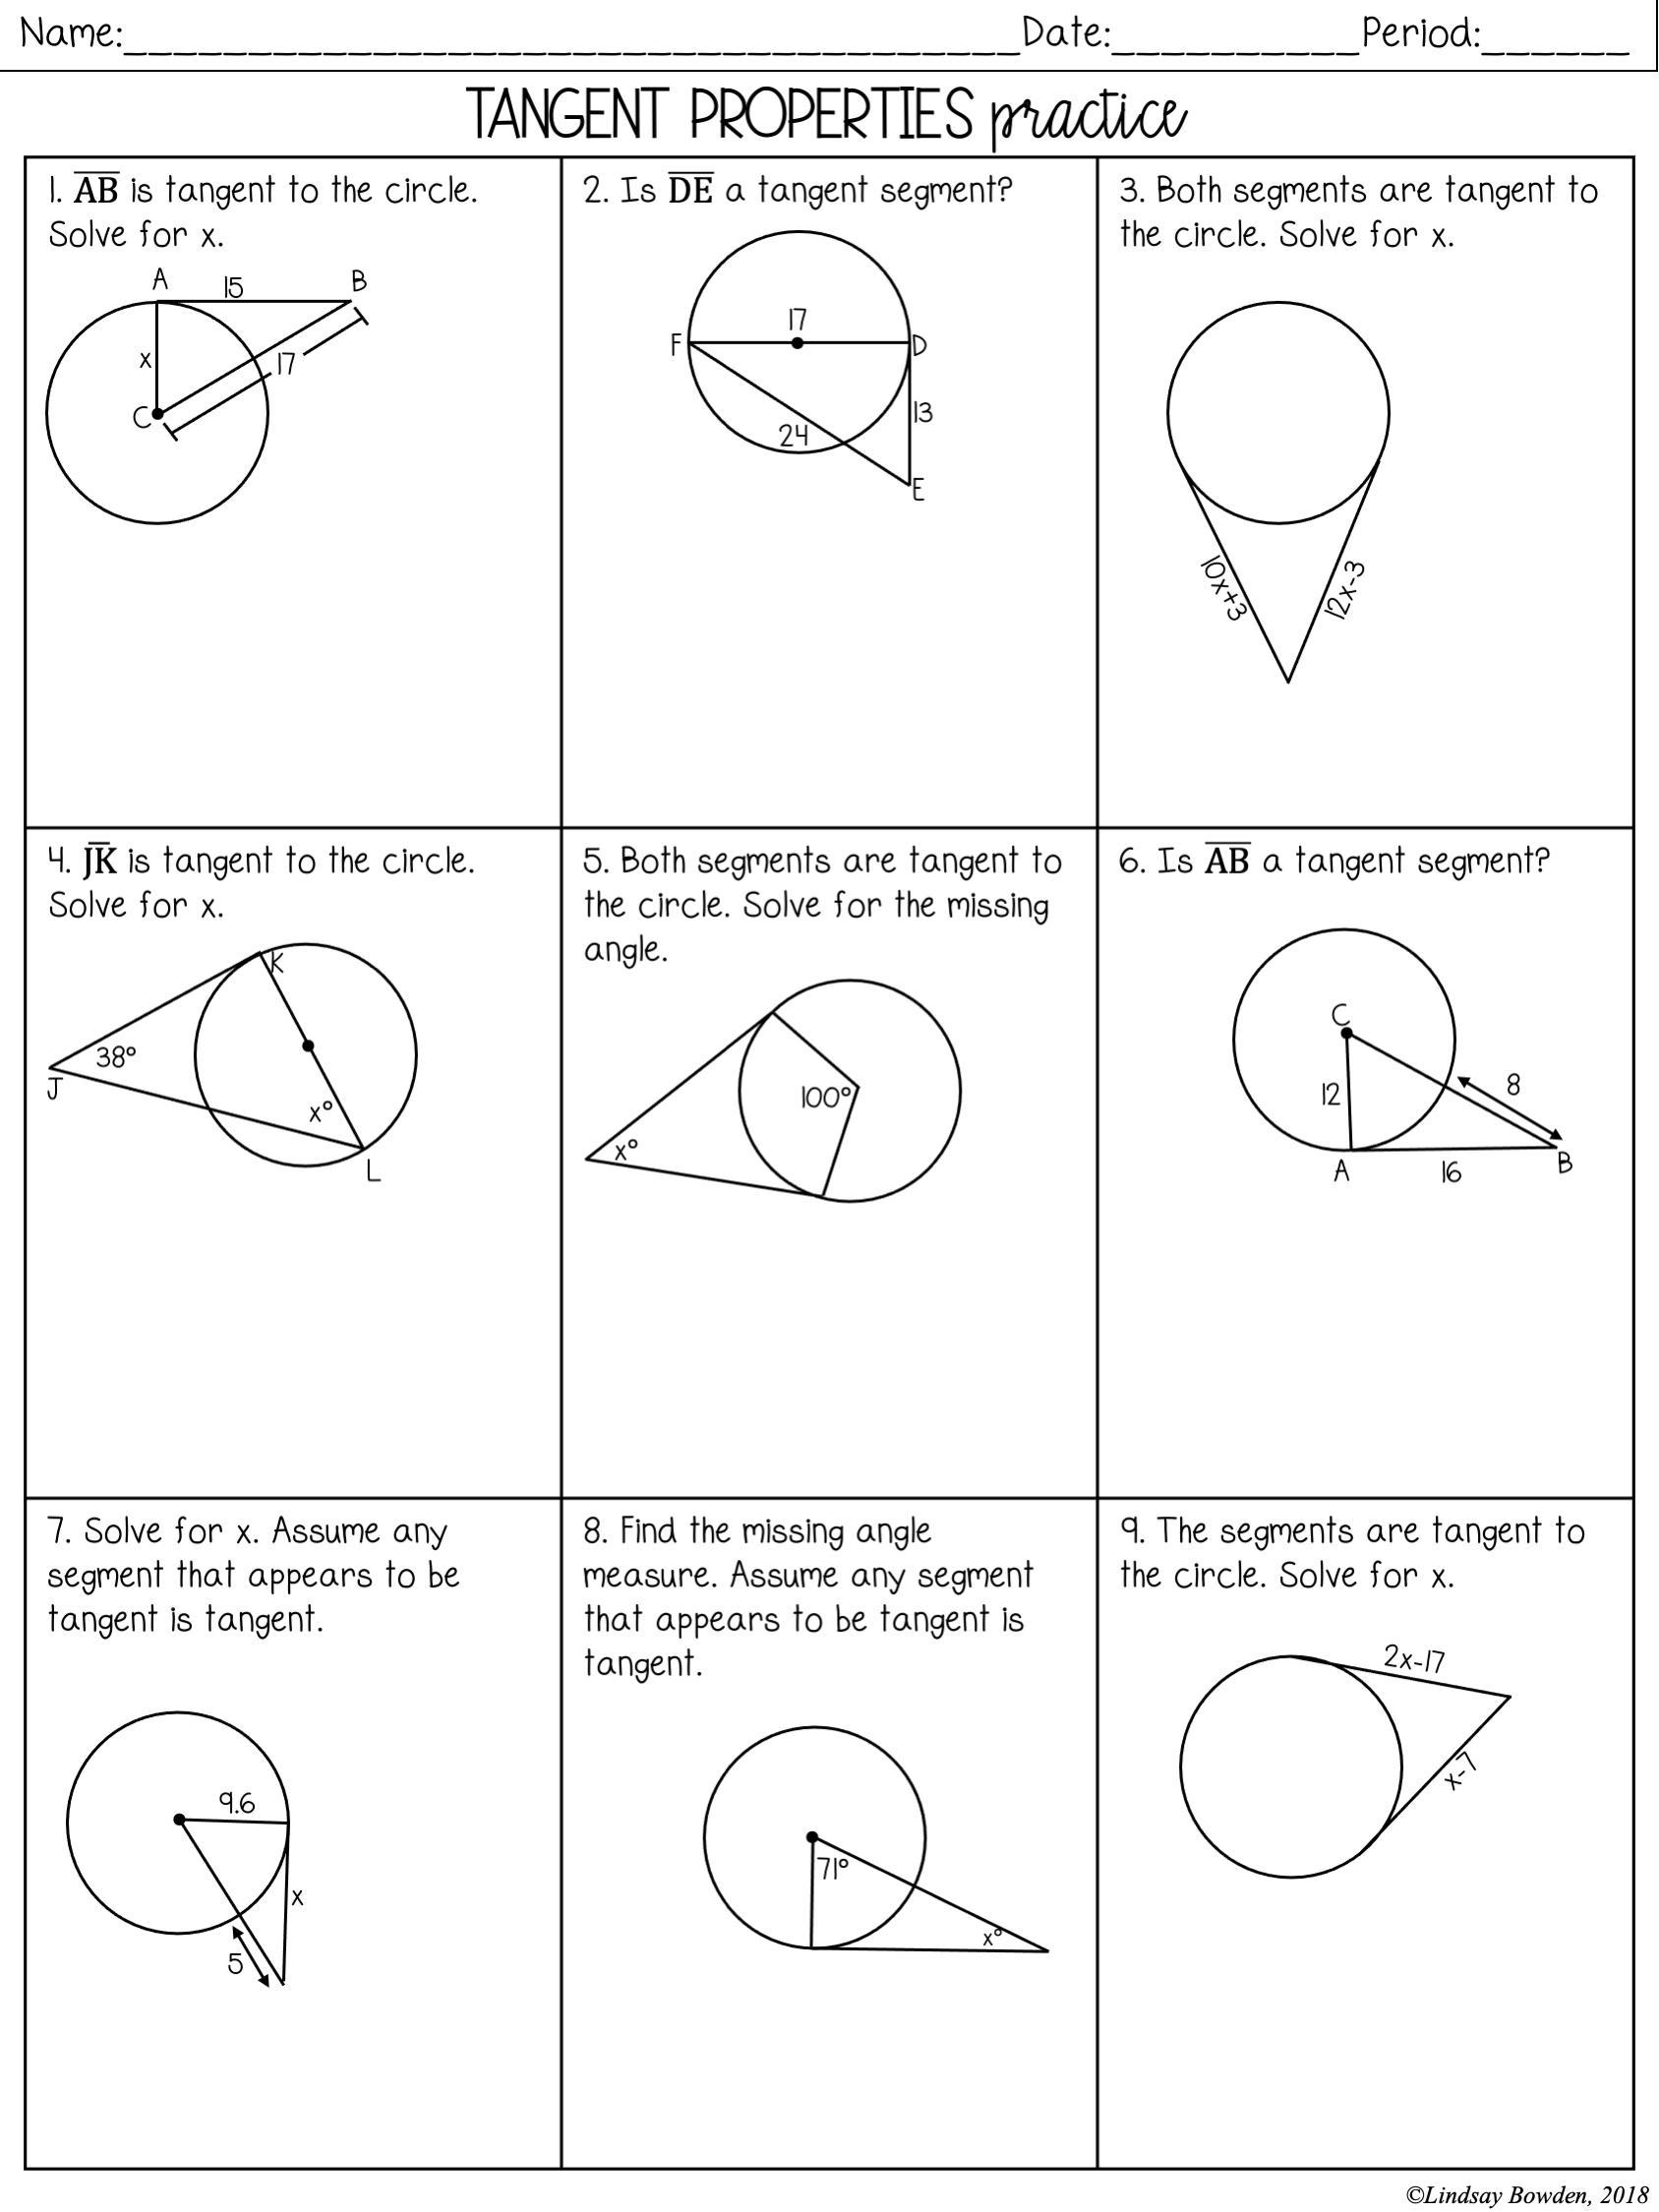 Circles Notes and Worksheets - Lindsay Bowden Intended For Angles In A Circle Worksheet